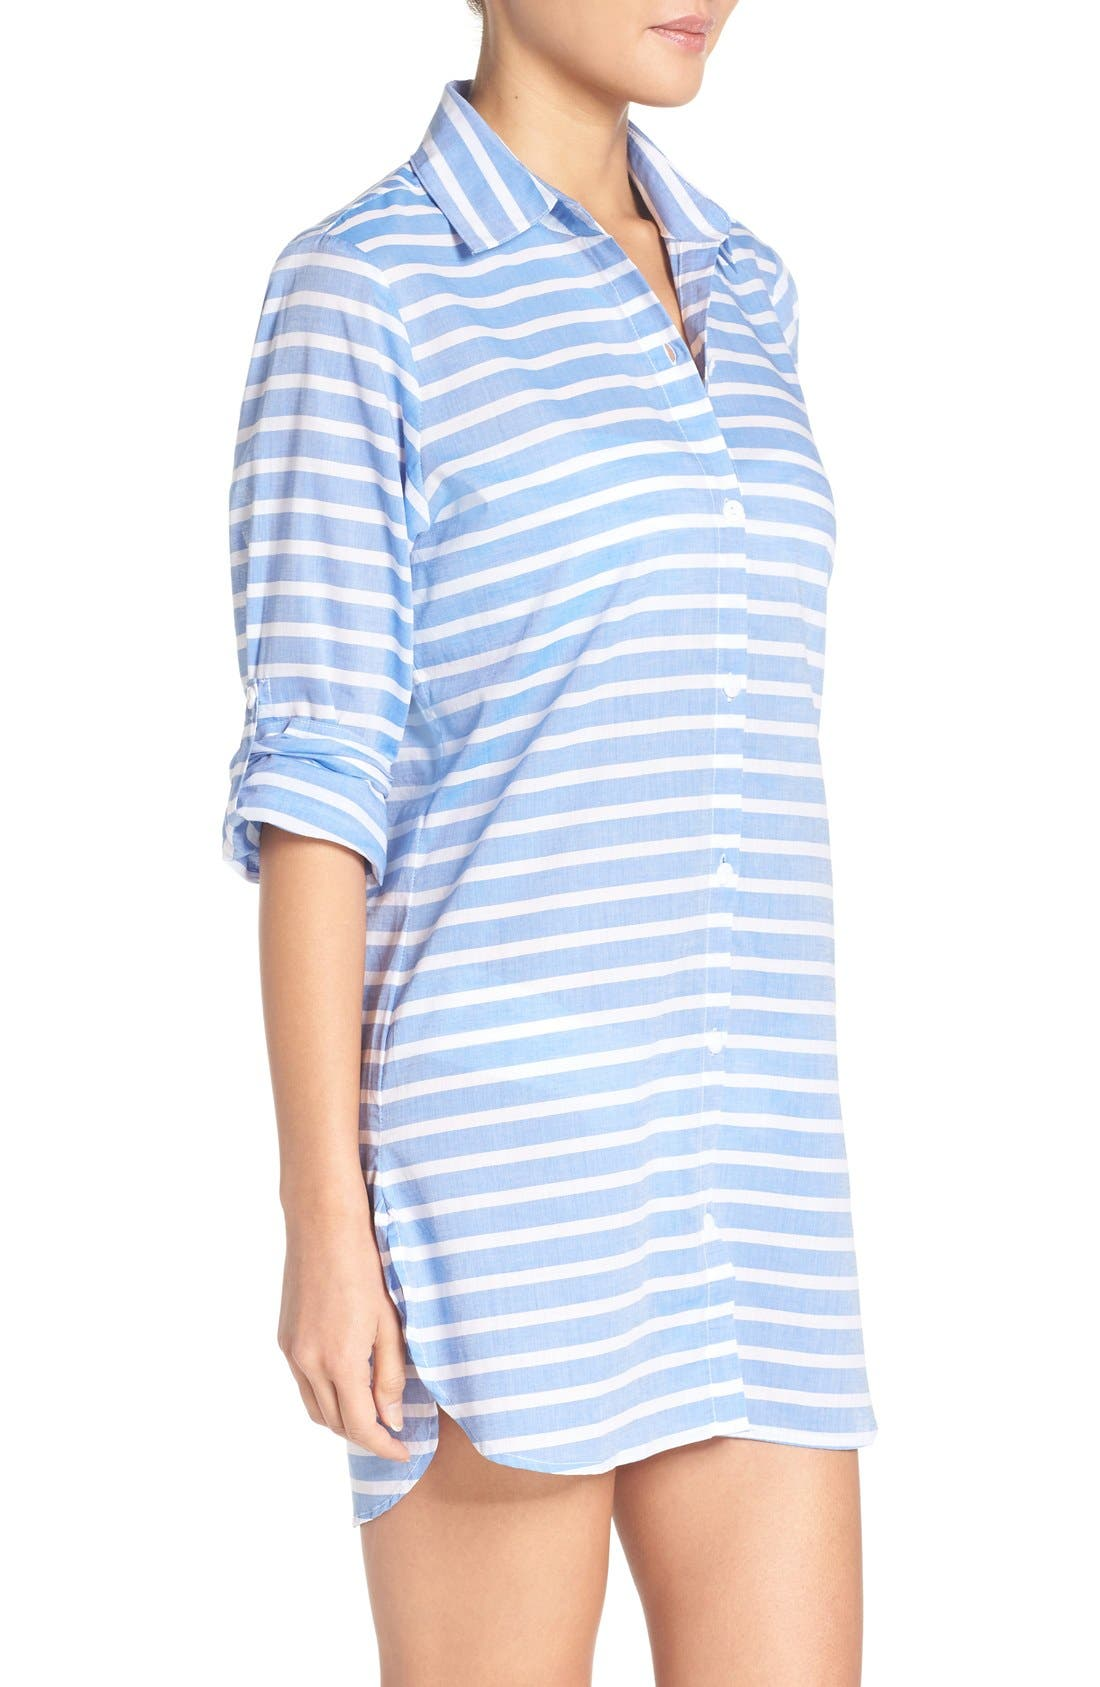 Alternate Image 3  - Tommy Bahama Brenton Stripe Boyfriend Shirt Cover-Up